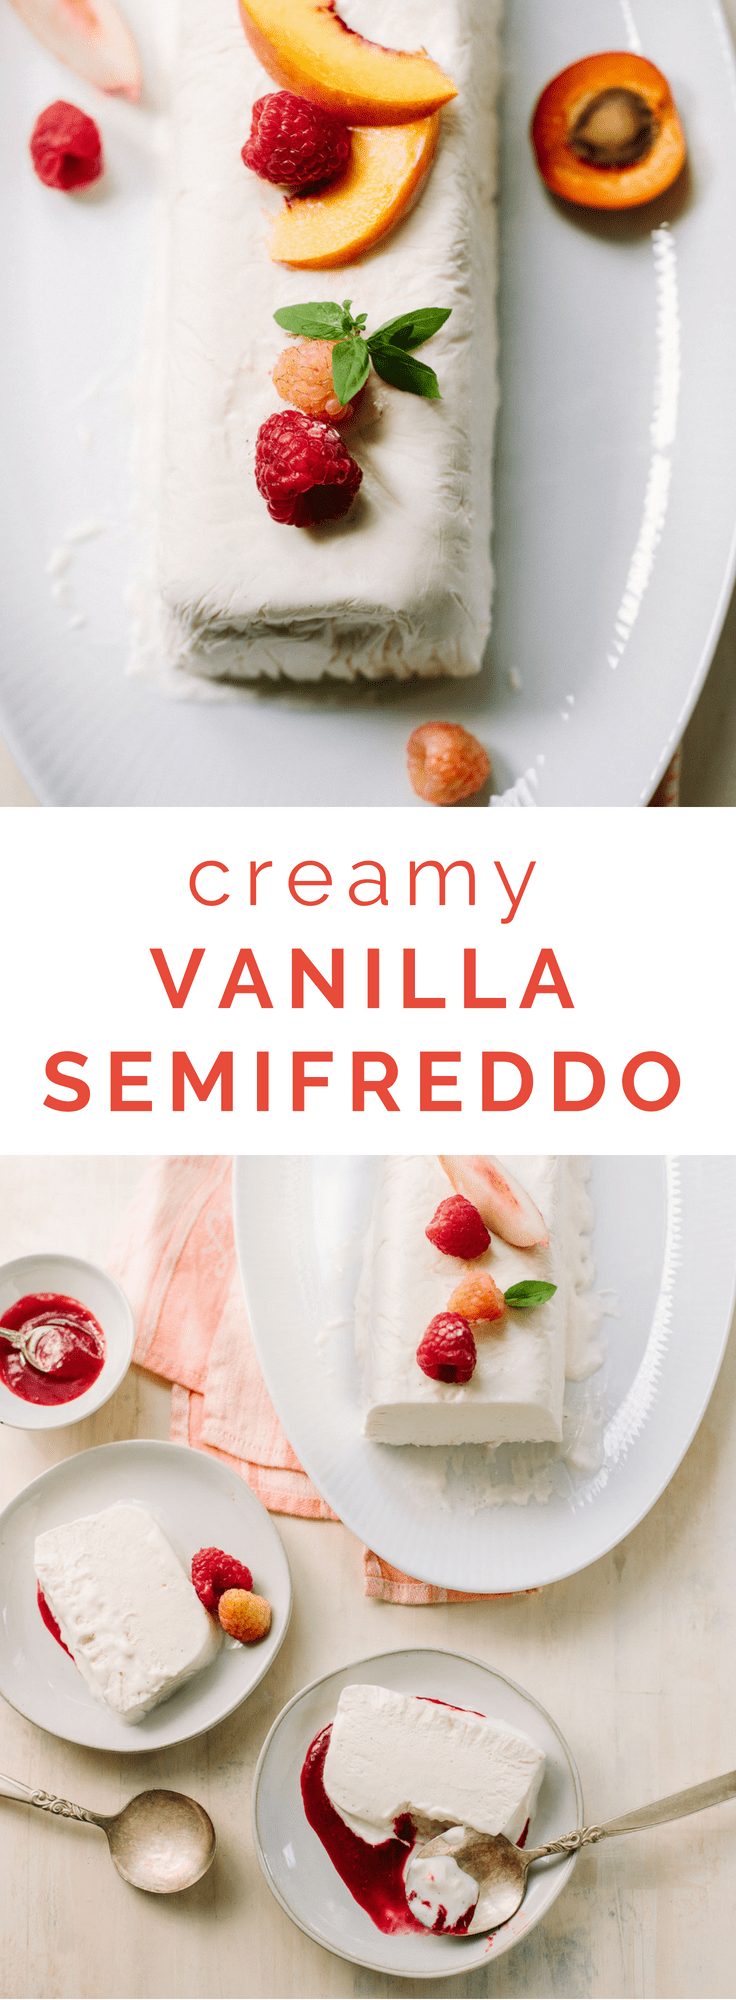 Tripe Cream Vanilla Semifreddo with Raspberry Sauce